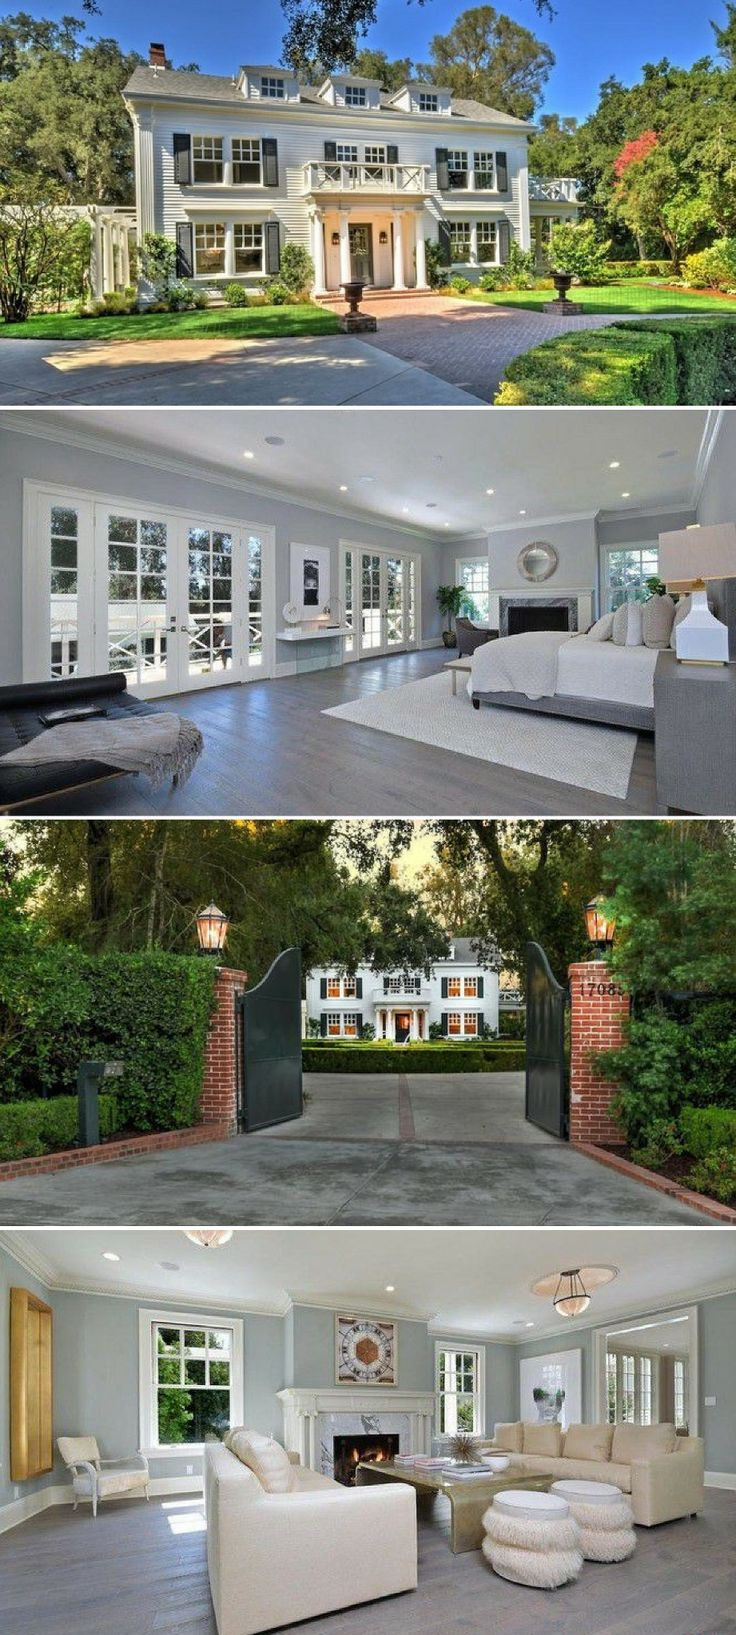 Kyle Richards and her real estate mogul husband, Mauricio Umansky, have purchased one of the most expensive homes to come on the market in the unlikely locale of Encino. #celebrityhomes